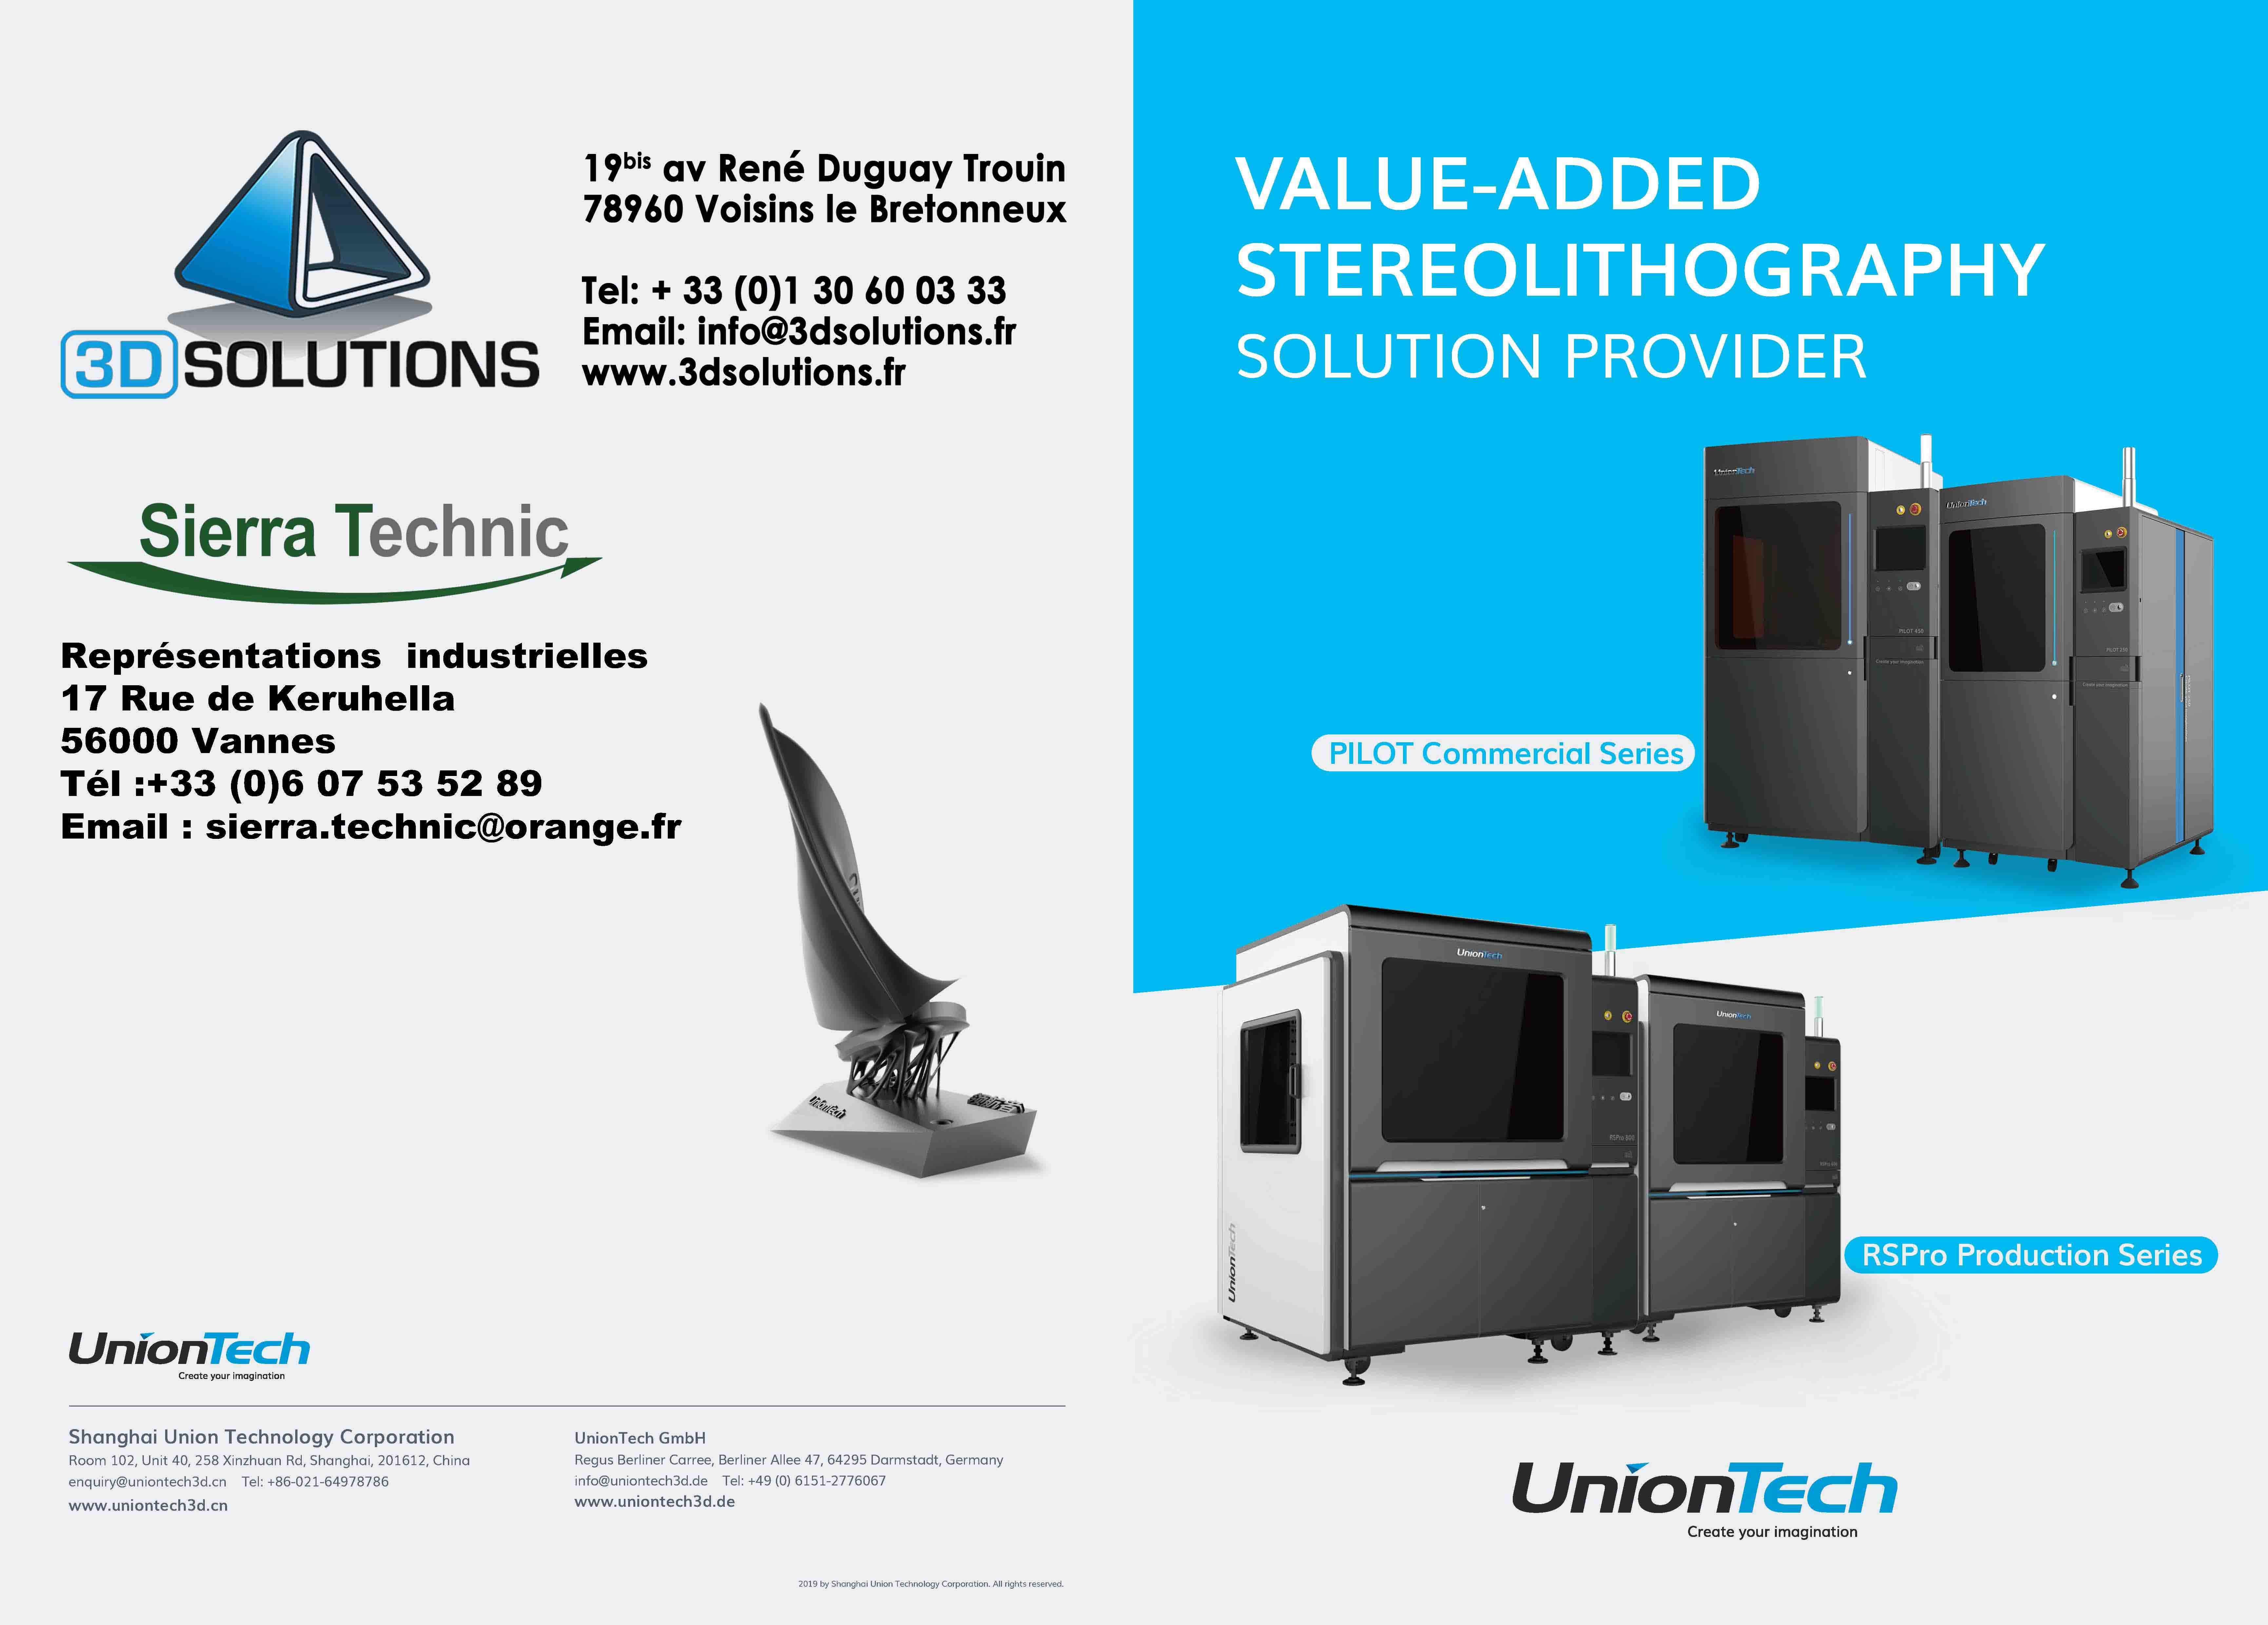 3DS UnionTech RS PRO 2100 ENG 2 Sierra Technic Page 1